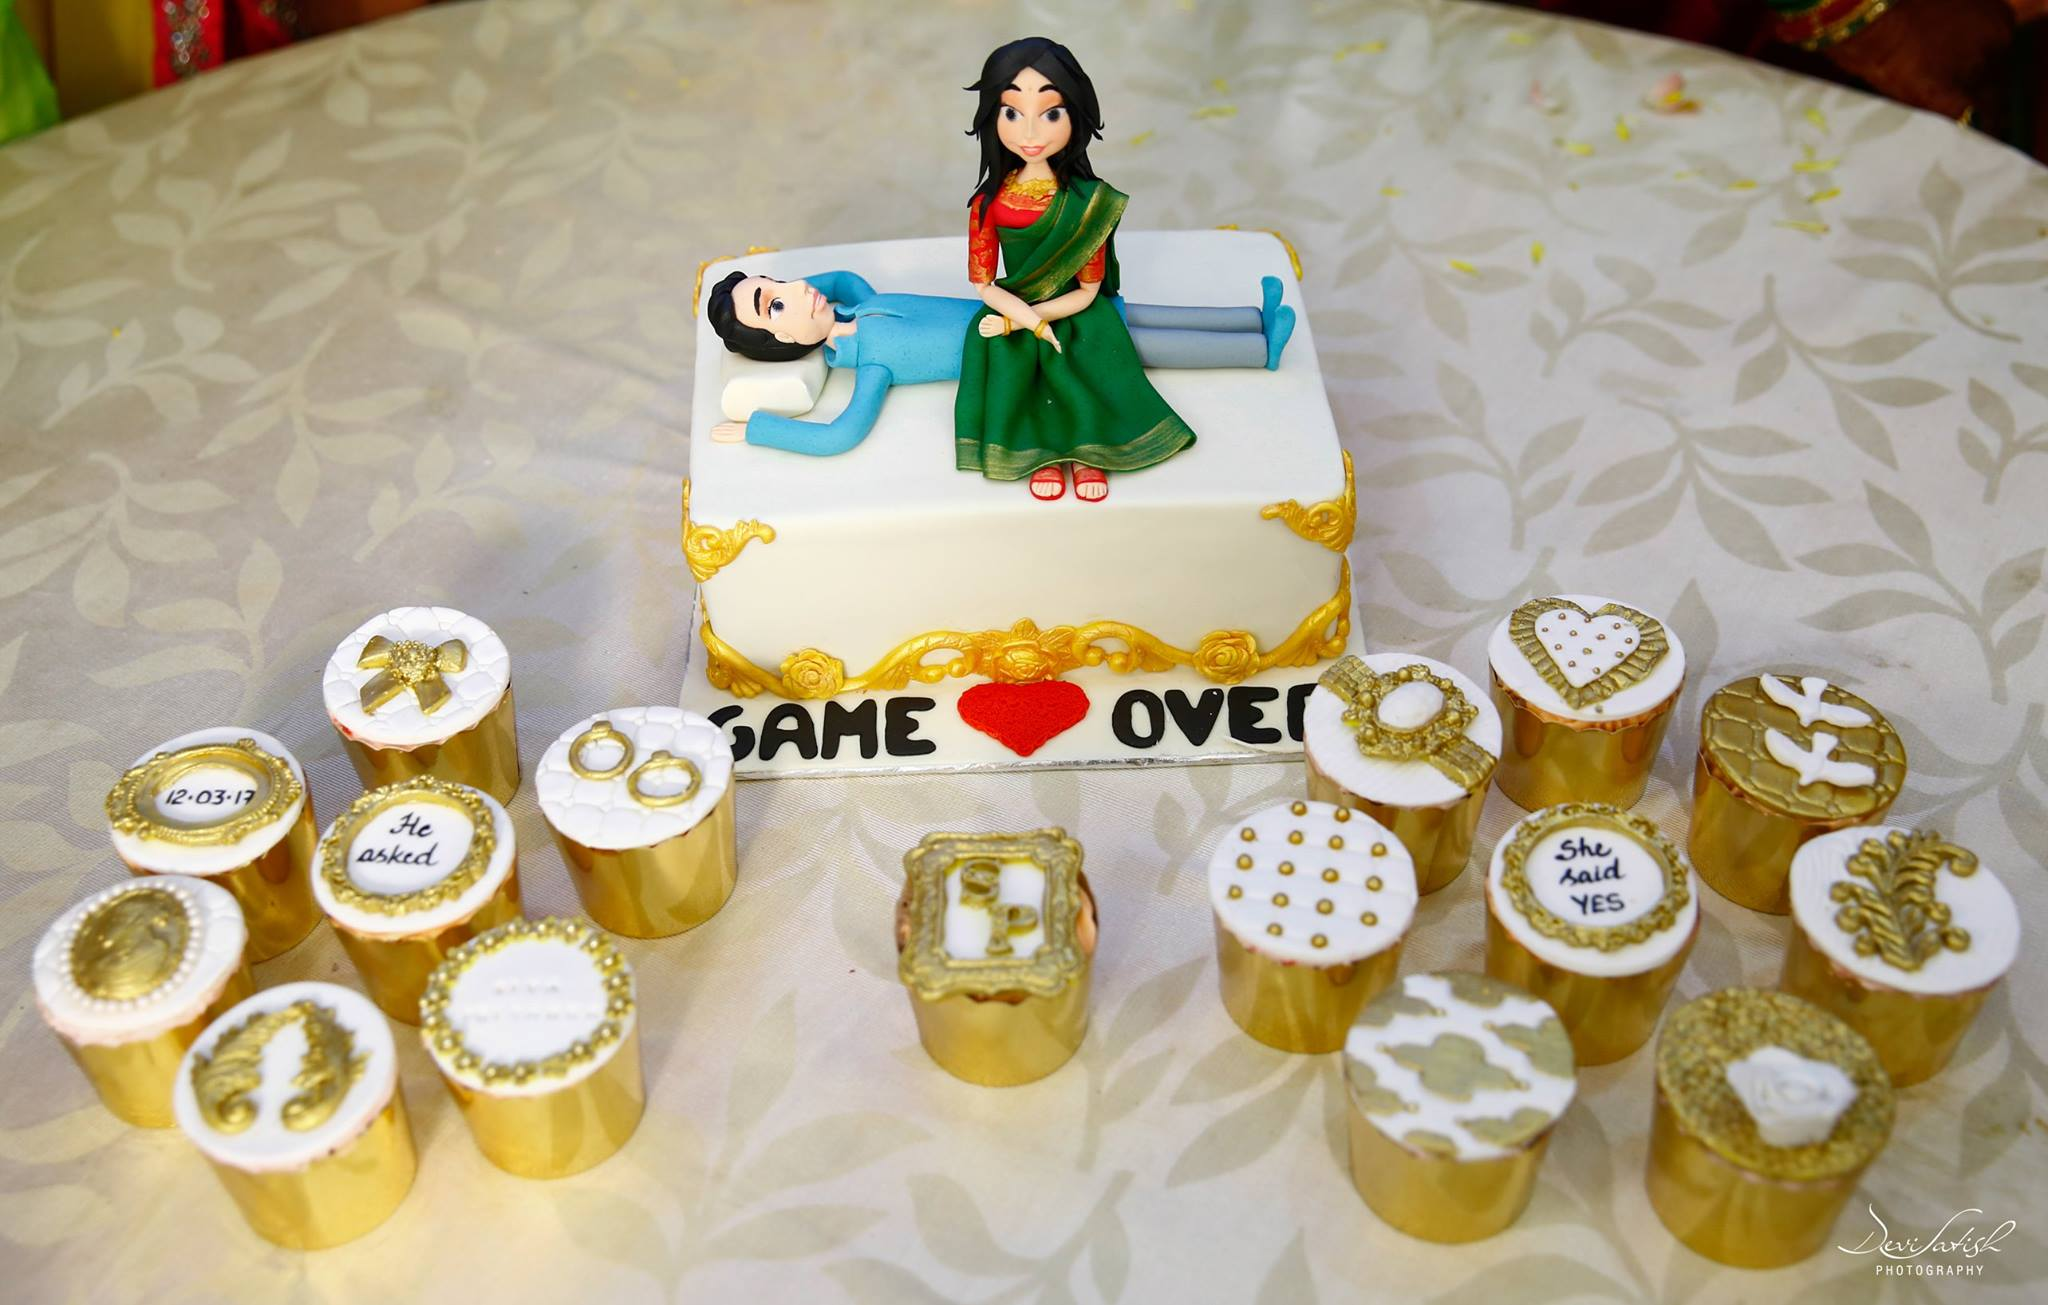 Game Over funny wedding cake